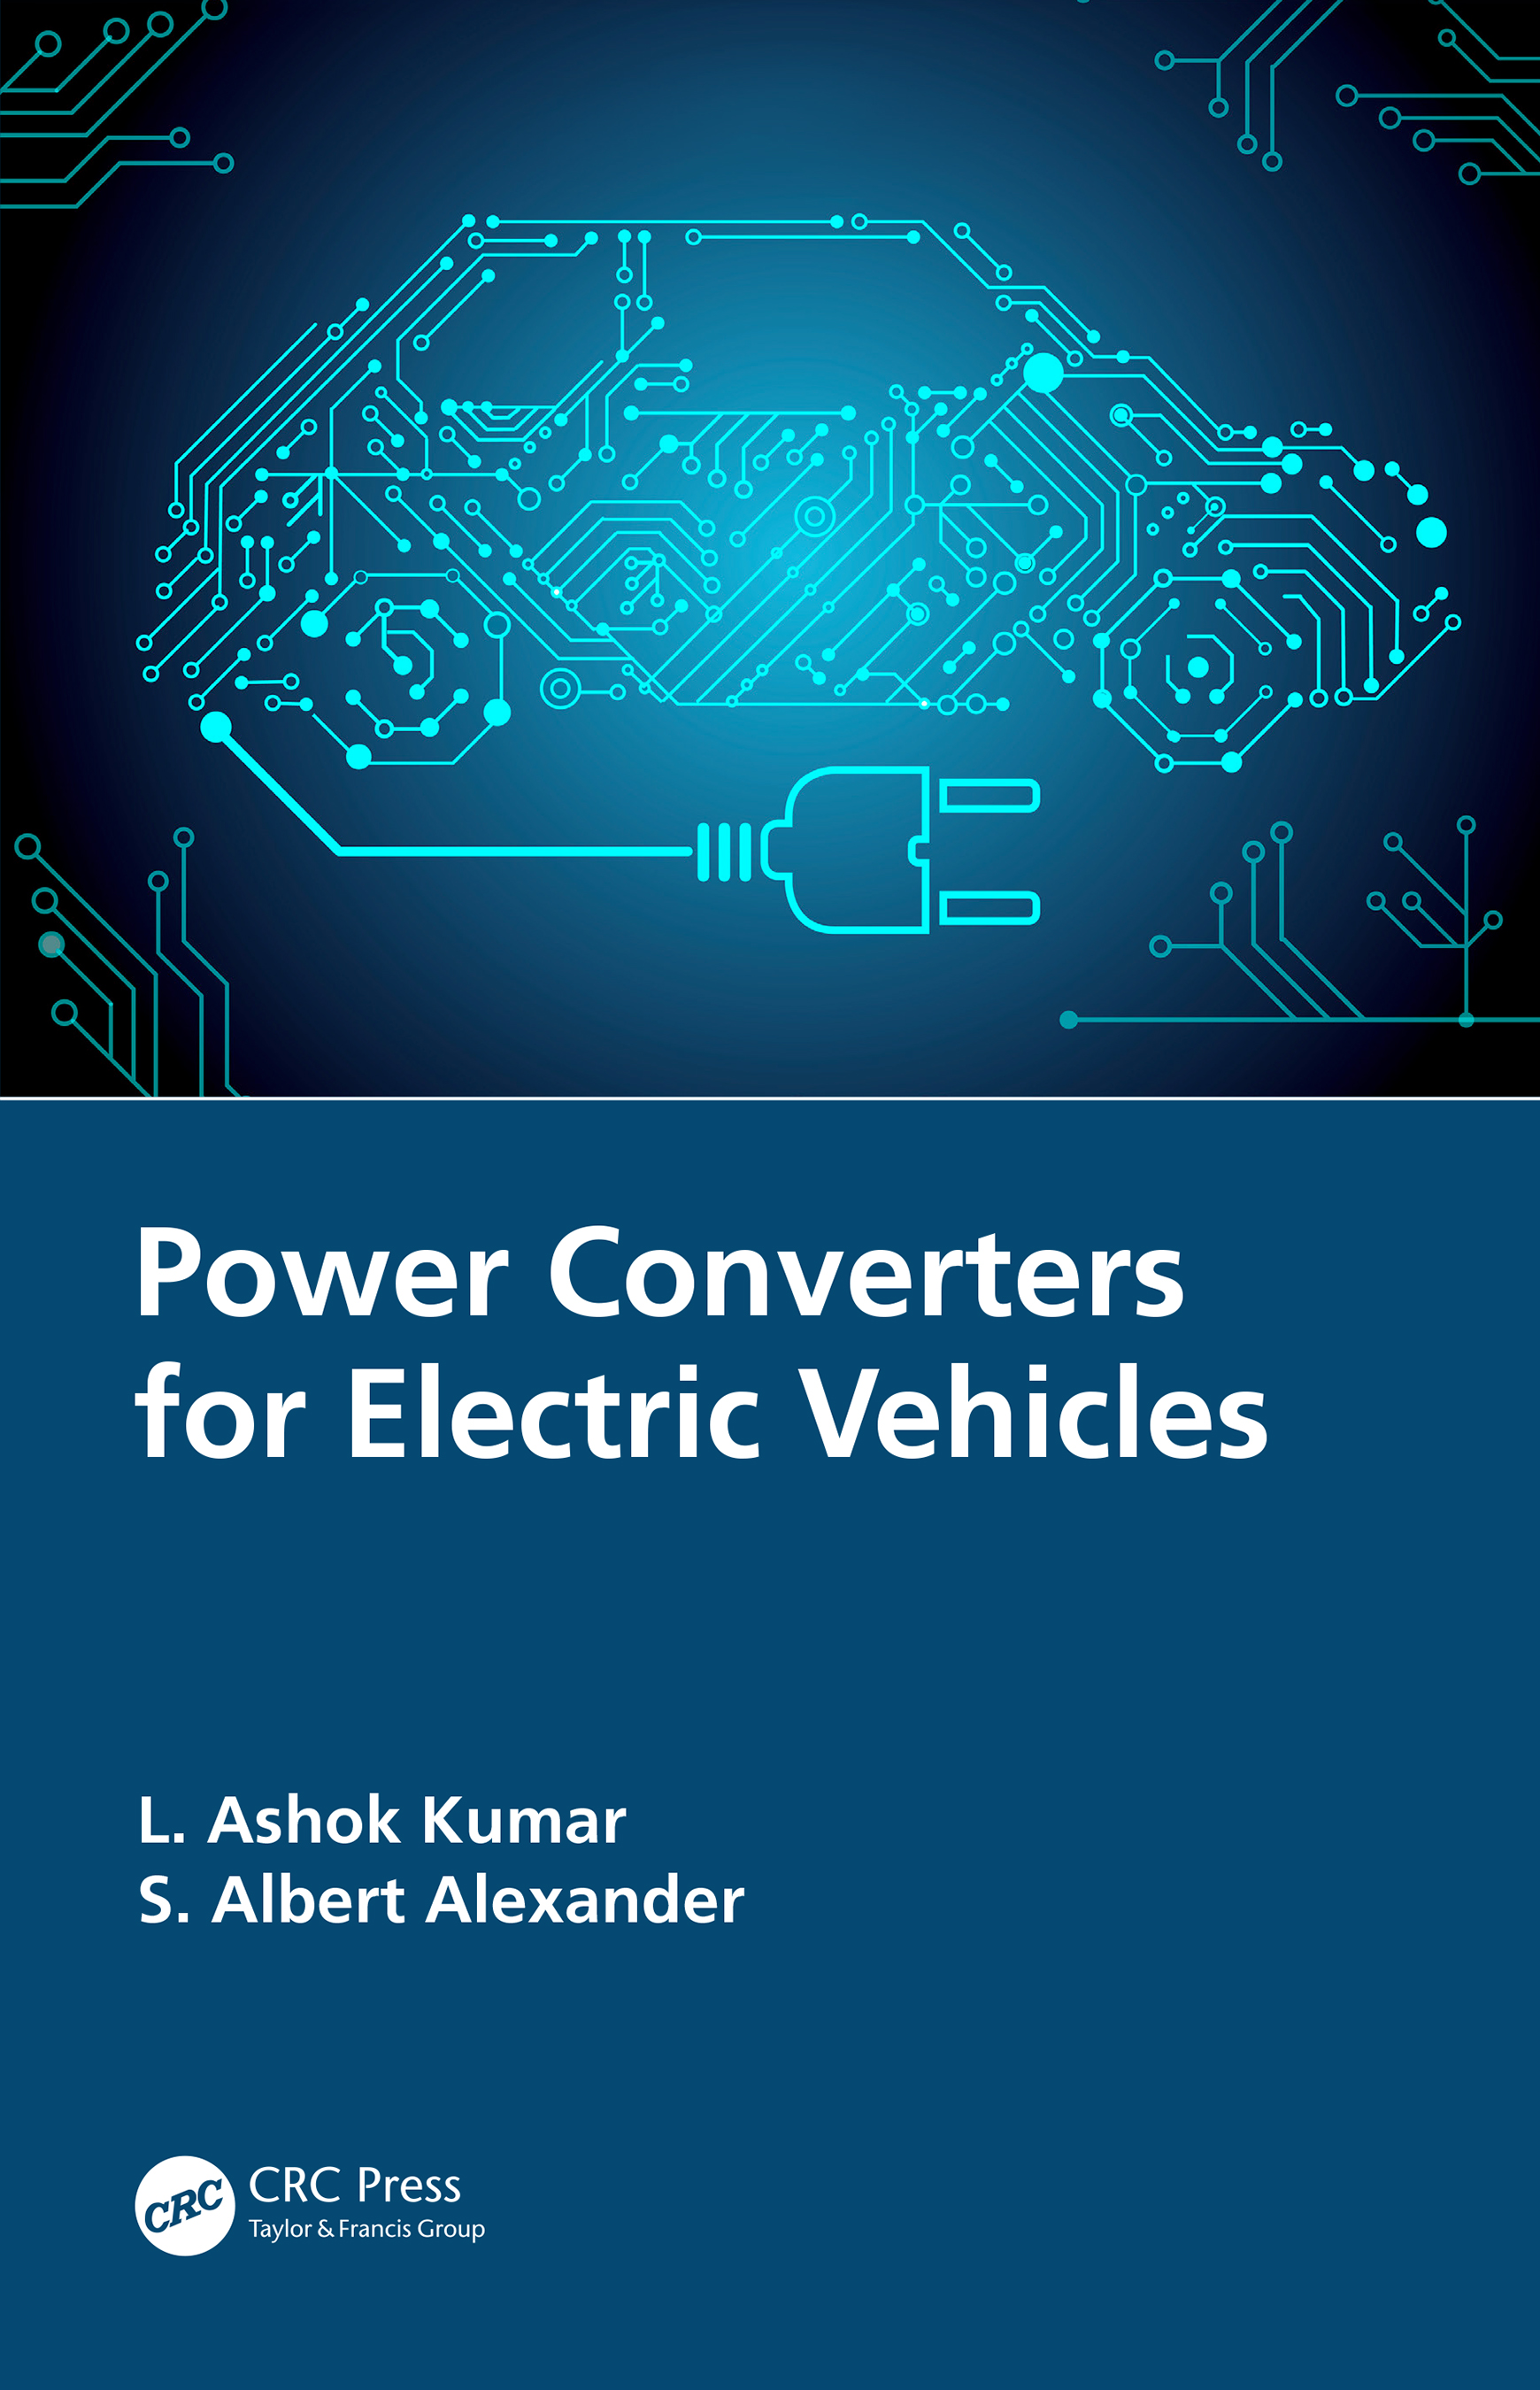 Power Converters for Electric Vehicles